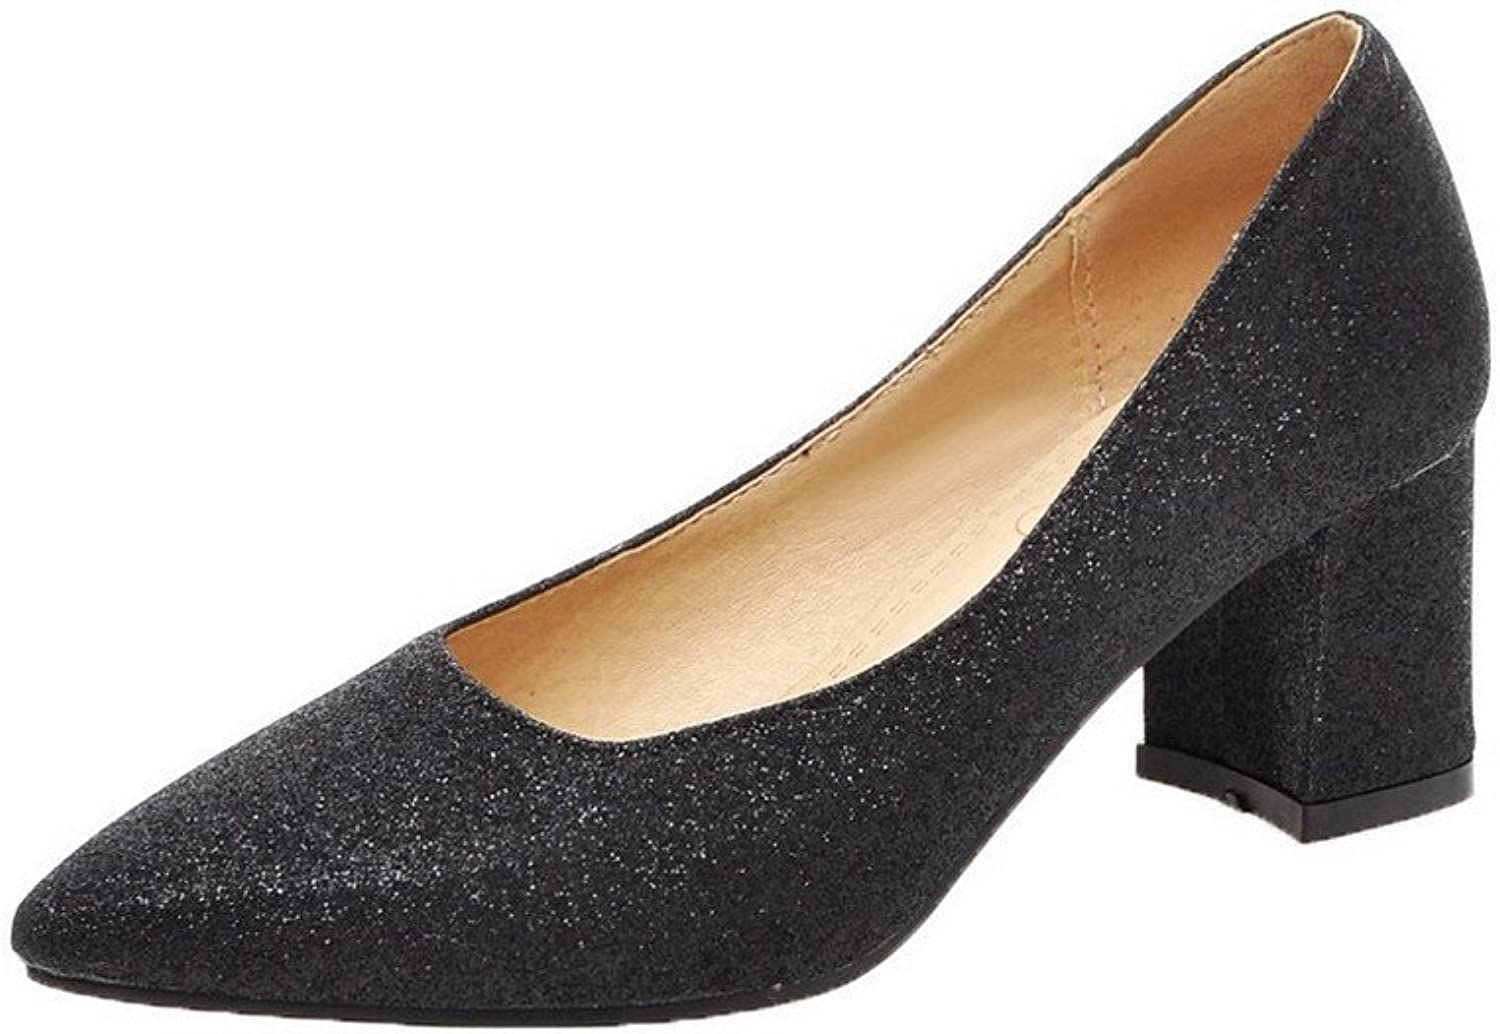 AmoonyFashion Women's PU Pointed-Toe Kitten-Heels Pull-on Studded Pumps-shoes